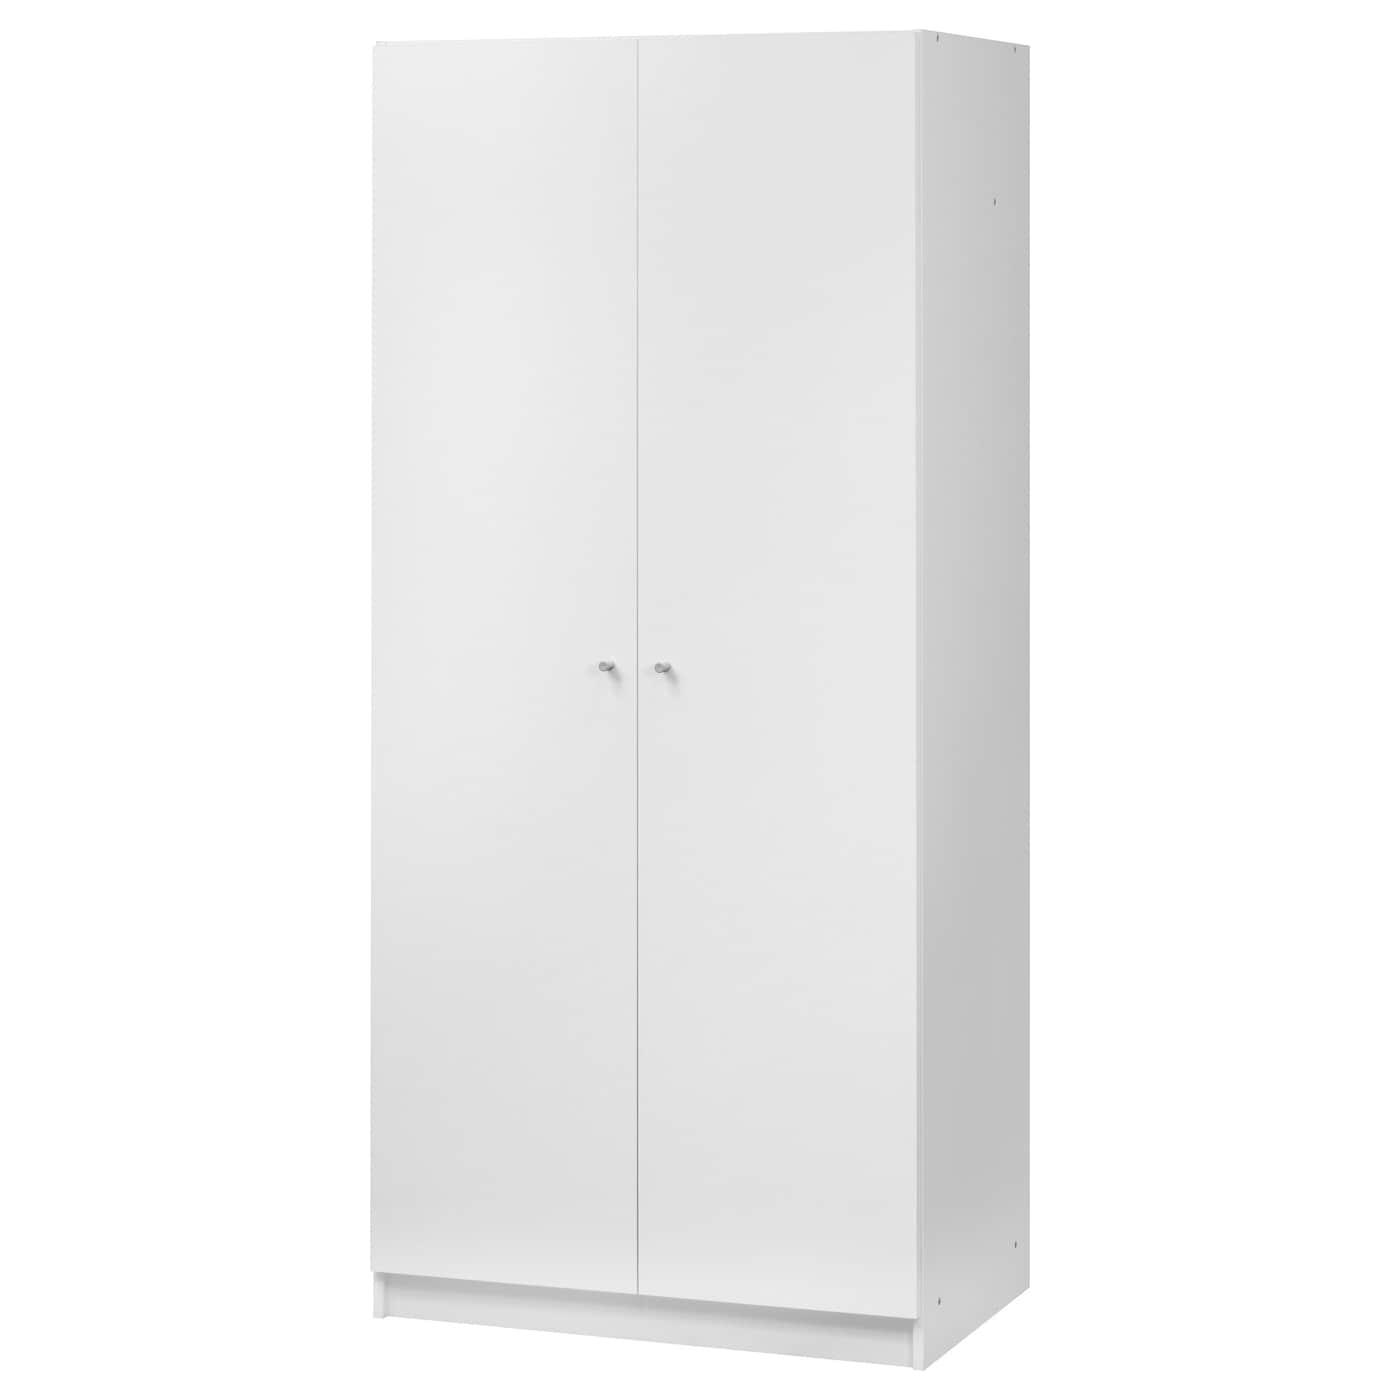 bostrak wardrobe white 80x50x180 cm ikea. Black Bedroom Furniture Sets. Home Design Ideas